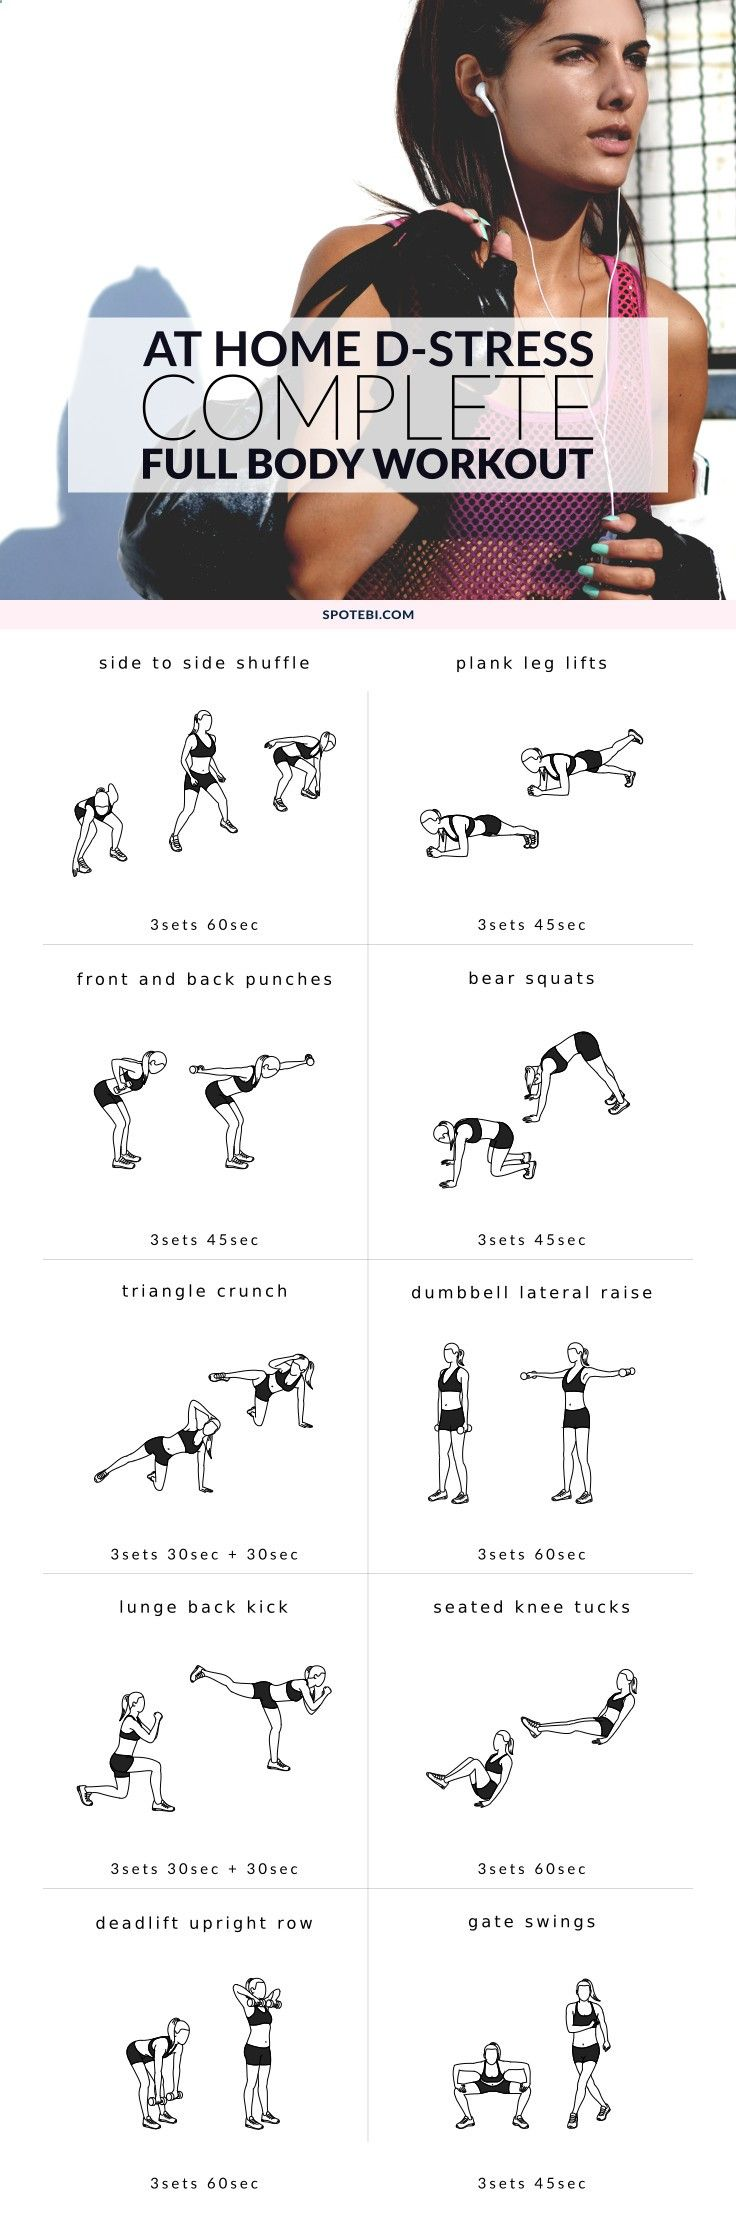 An at home full body workout to help d-stress. amzn.to/2ssKnYB